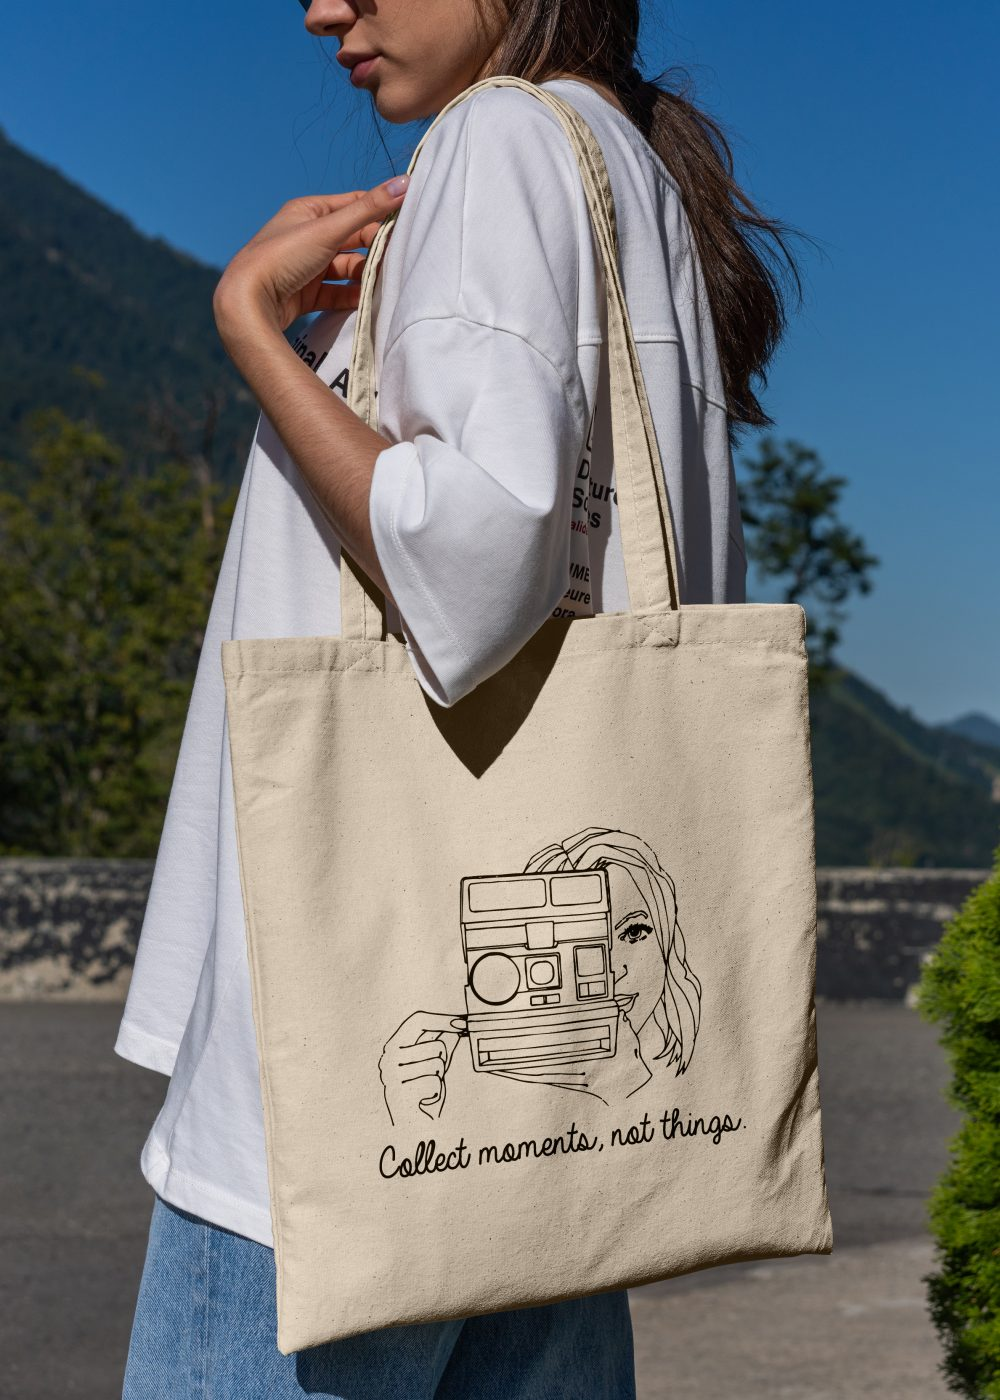 Tote bag - Collect moments not things - female photographer